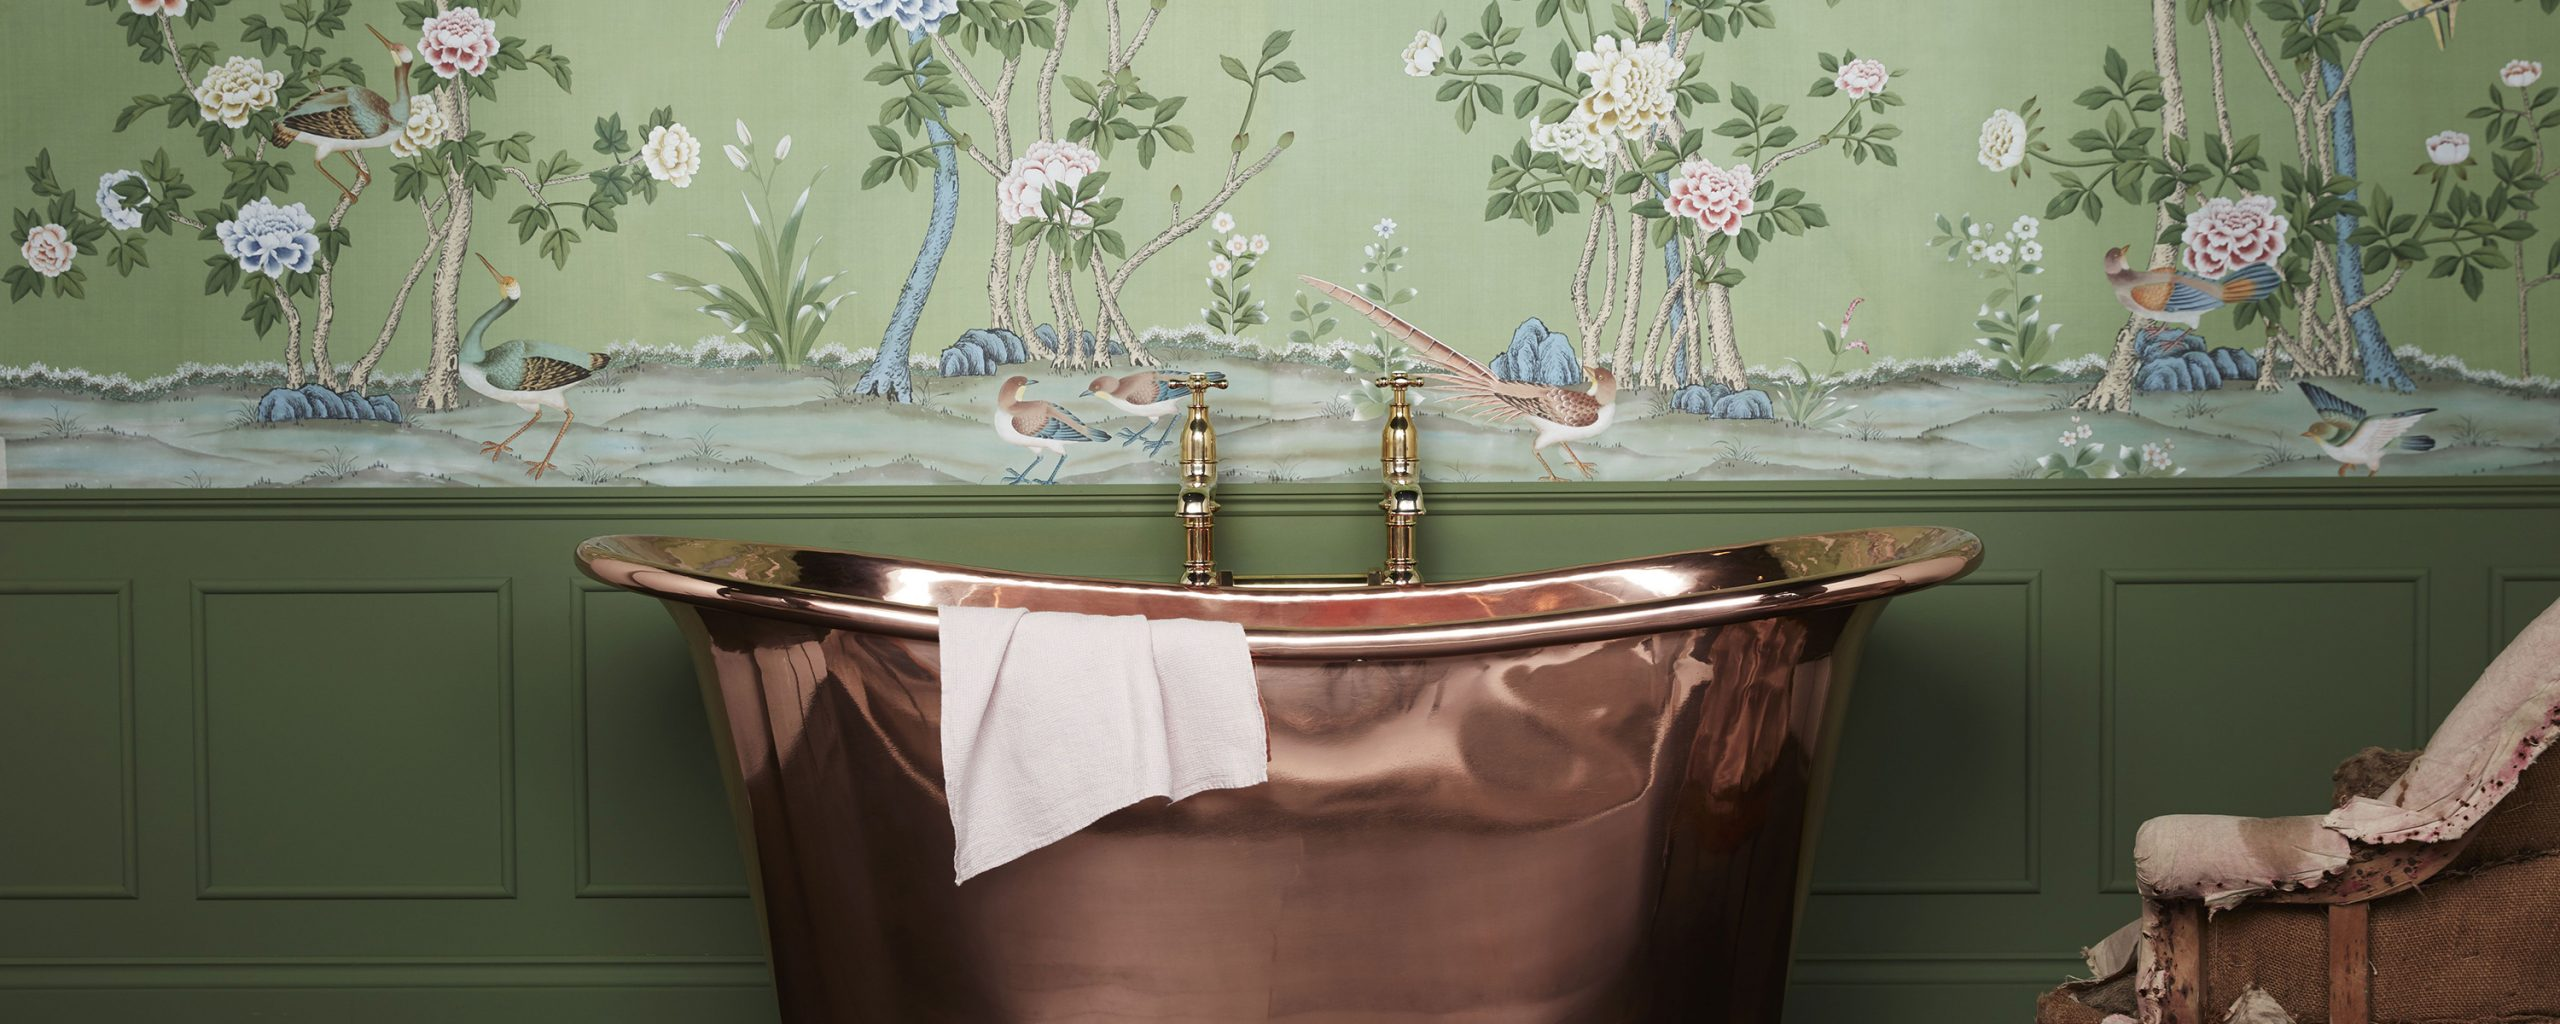 4 STRIKING WALLPAPER IDEAS FOR OUTSTANDING BATHROOM DESIGN